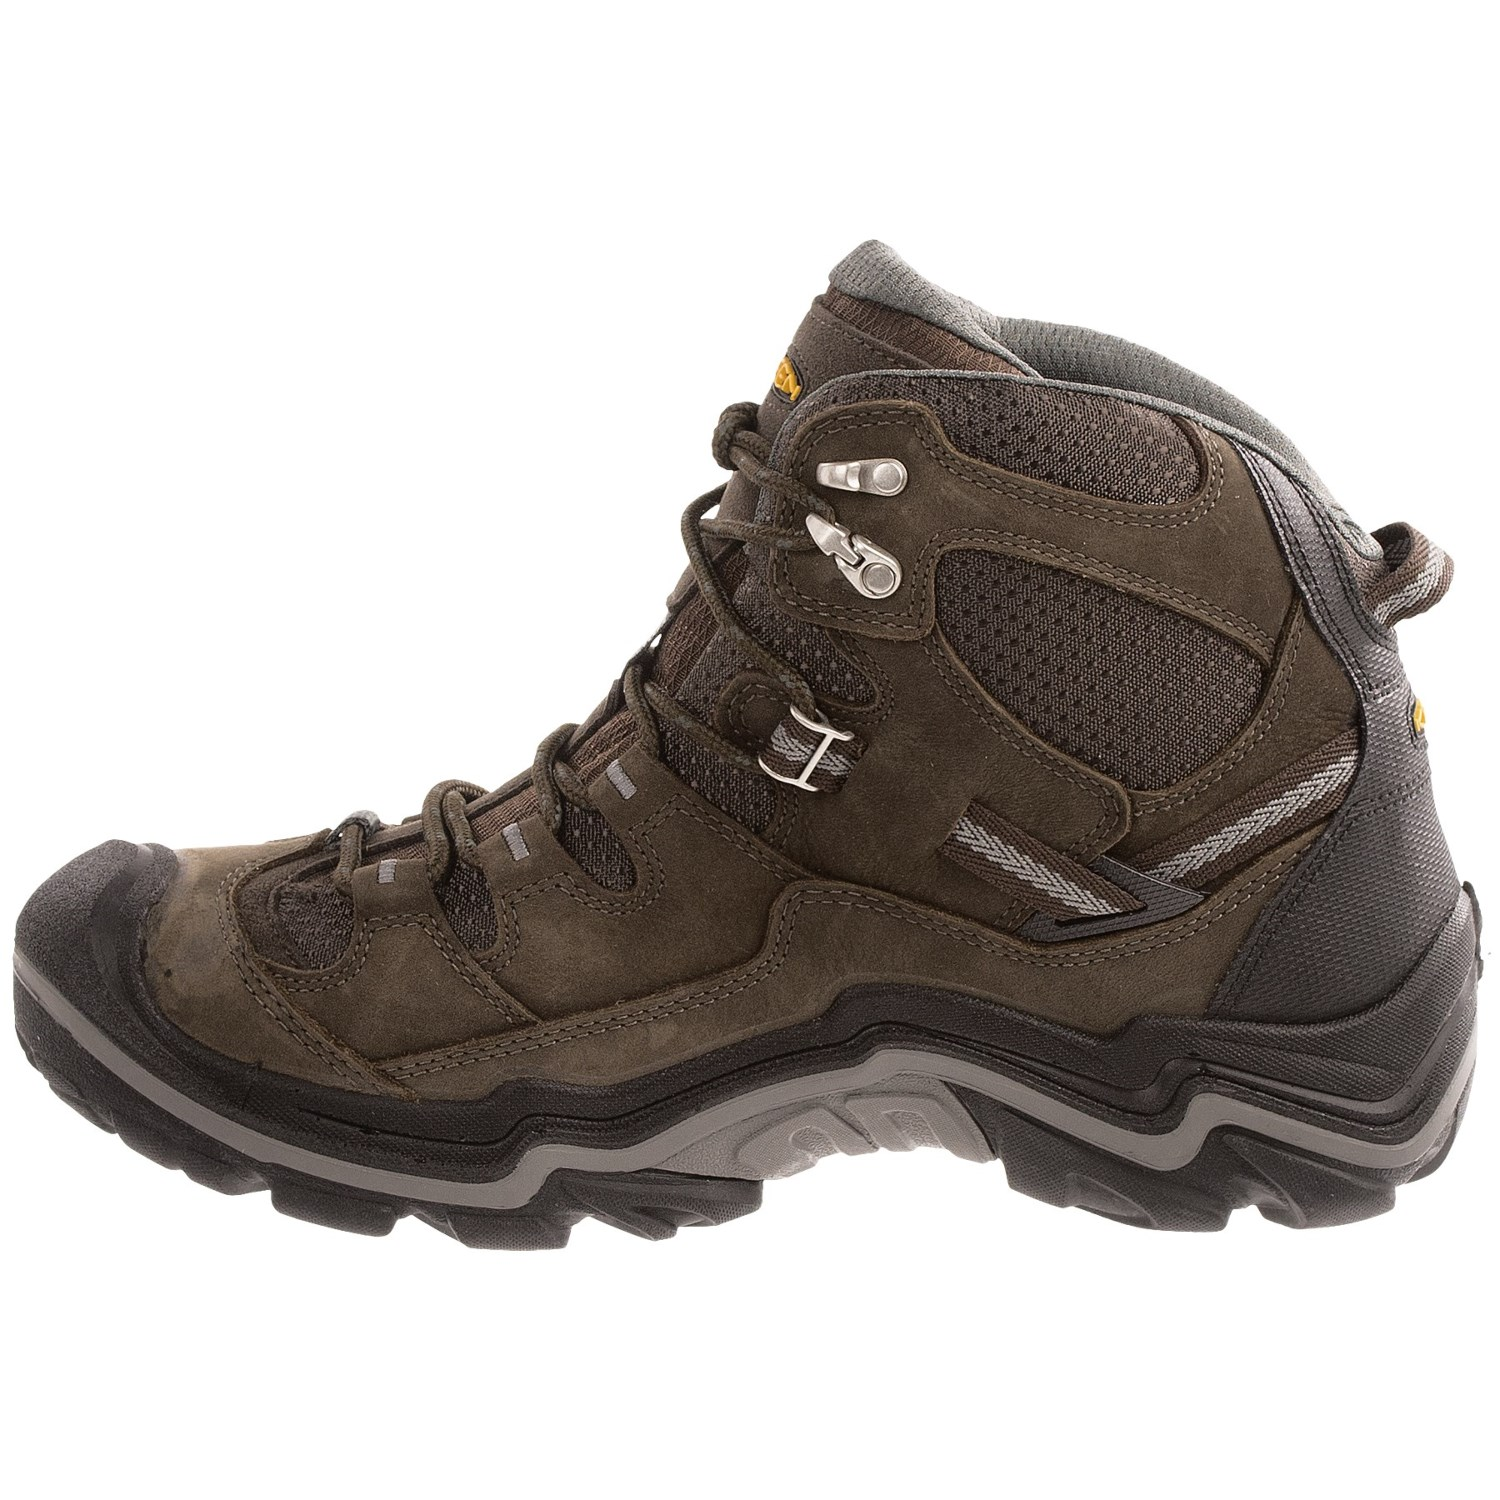 Keen Durand Hiking Boots For Men 8051c Save 35